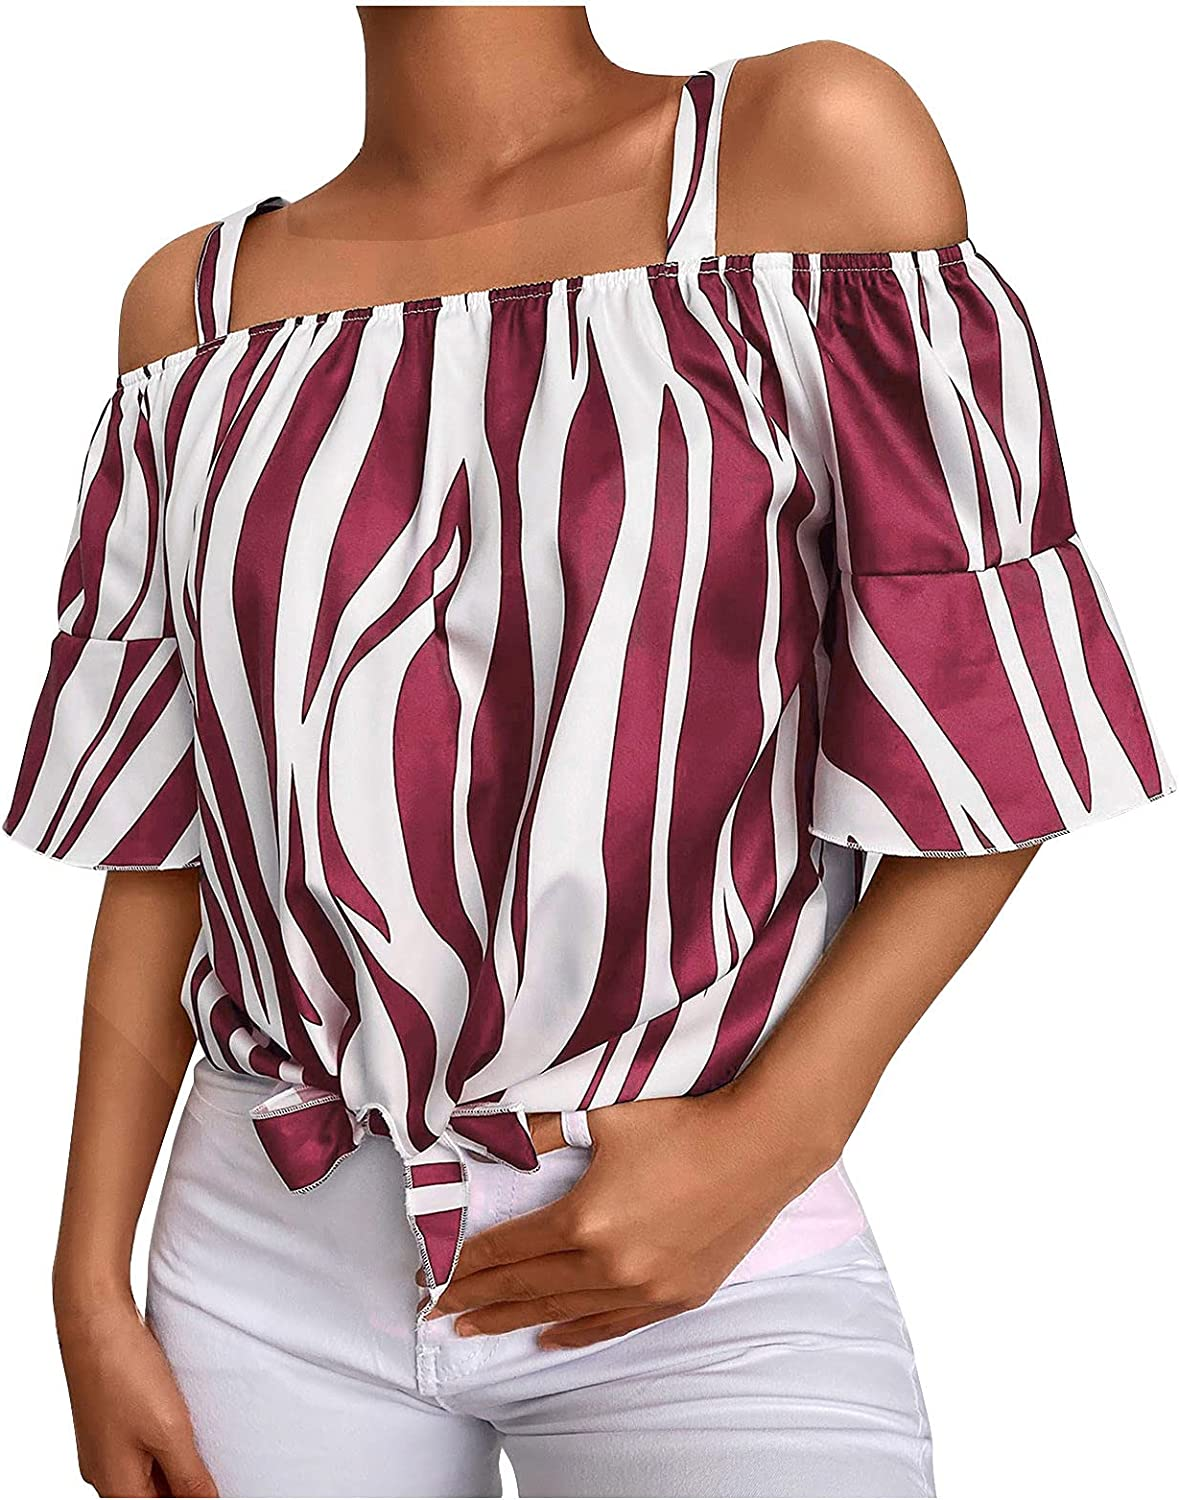 Off Shoulder Tops for Women Sexy Casual Summer Striped 3/4 Bell Sleeve Flowy Blouses Shirts Tunics